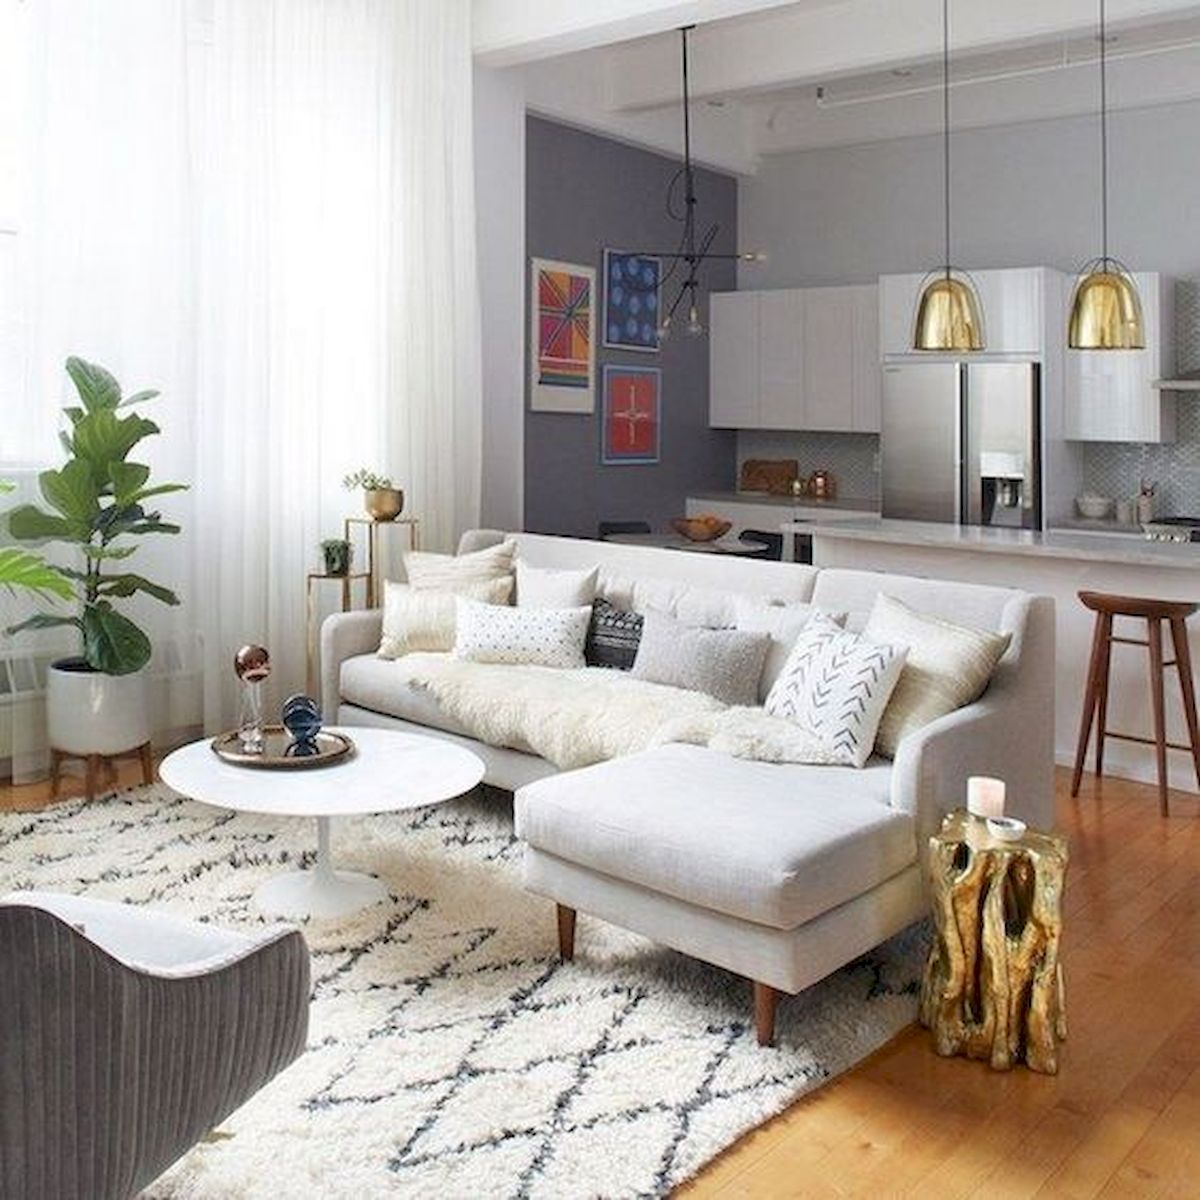 Cozy Living Room: 57 Cozy Living Room Apartment Decor Ideas